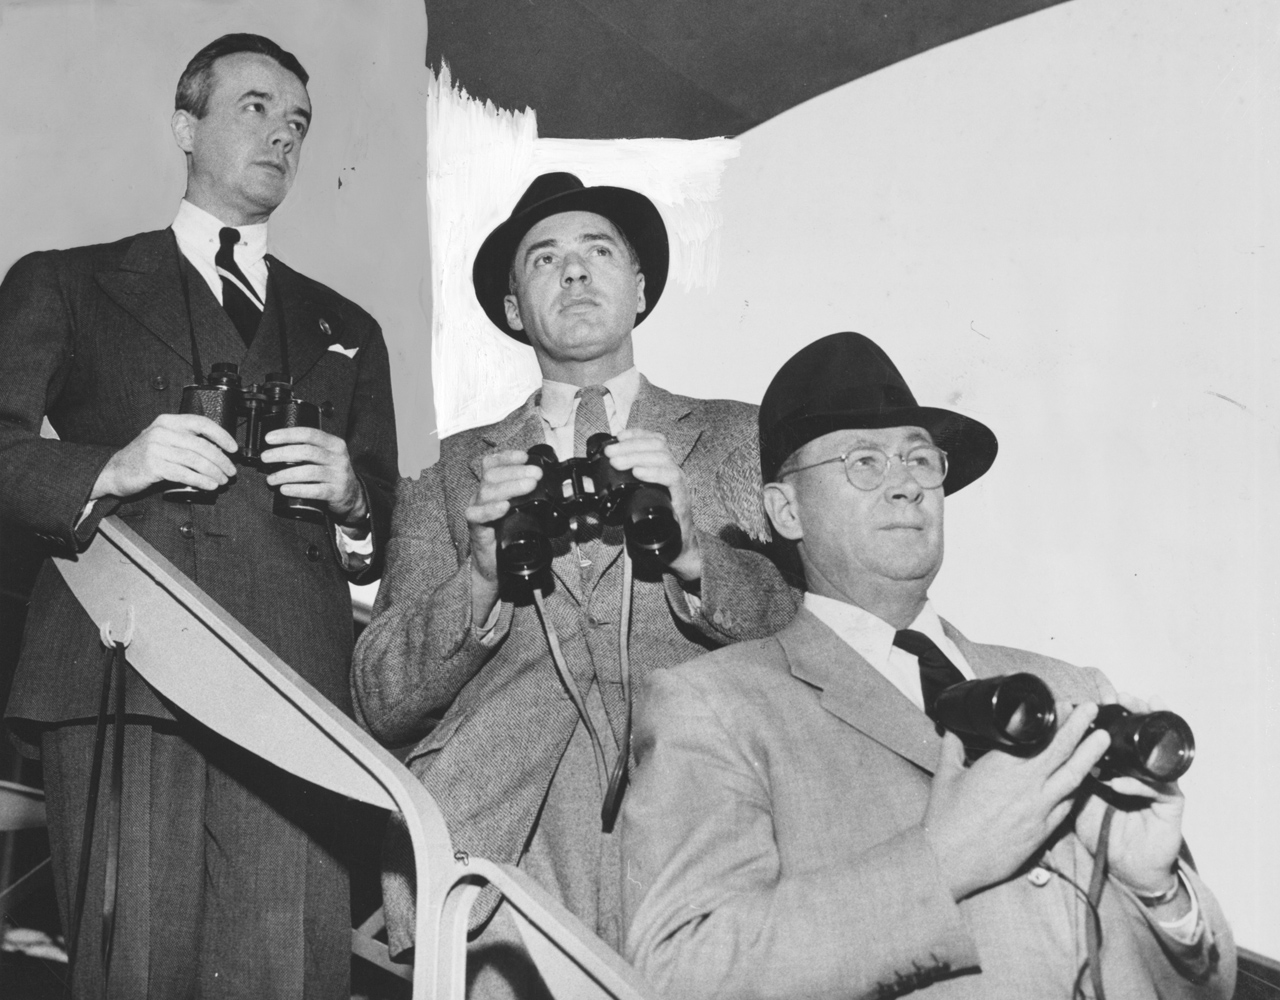 Frank E. Kilroe as assistant racing secretary and placing judge with Aiden Roark and Jeff Cravath at Santa Anita Park (Keeneland Library Thoroughbred Times Collection)